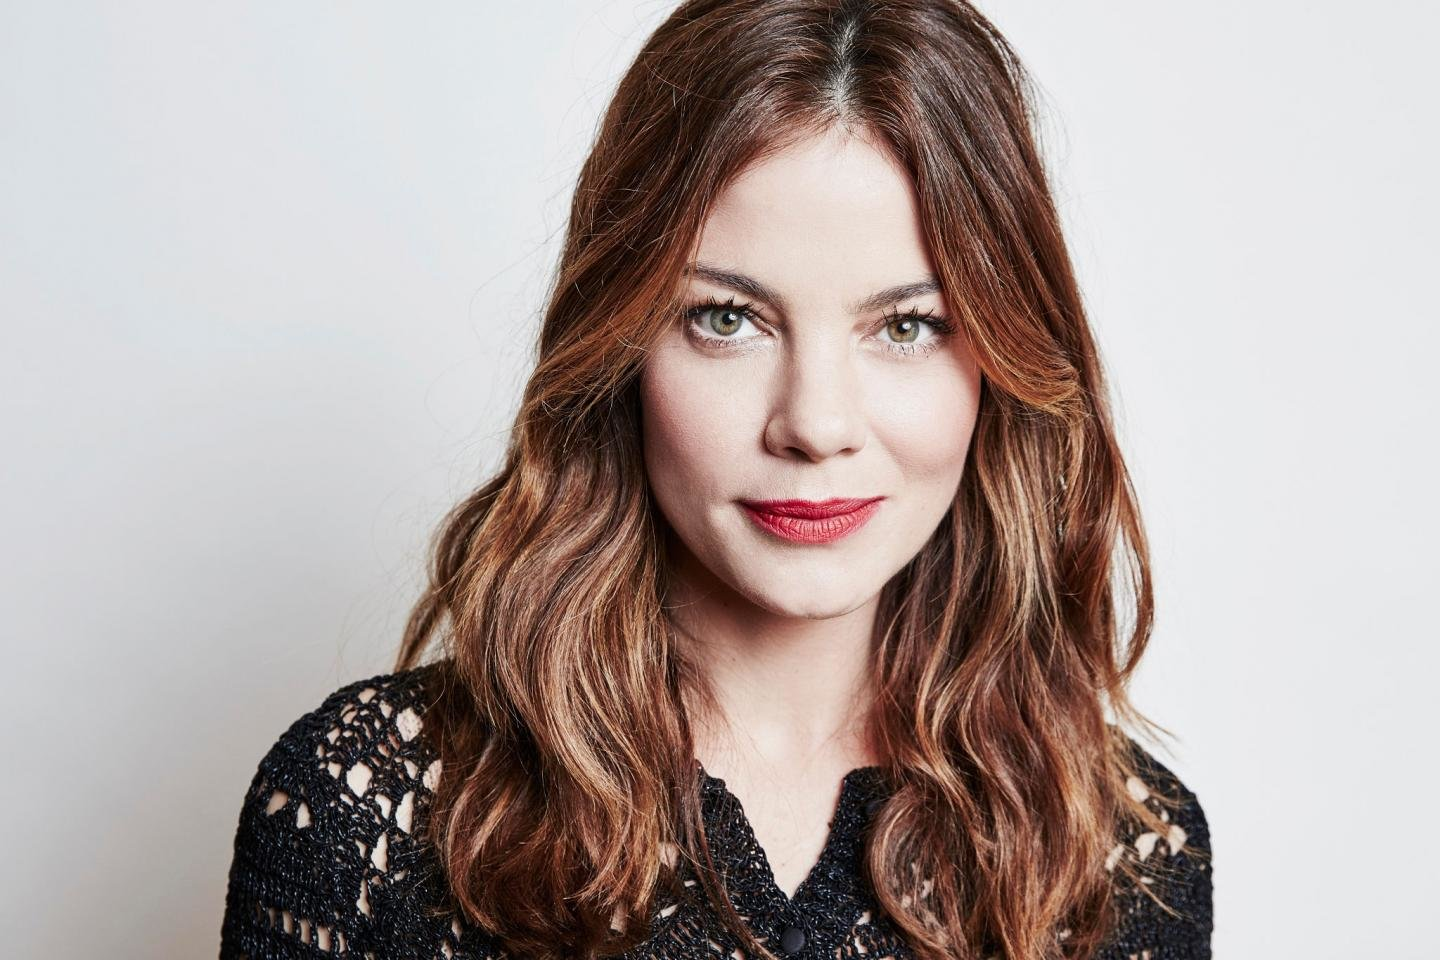 Free Michelle Monaghan high quality background ID:63118 for hd 1440x960 desktop